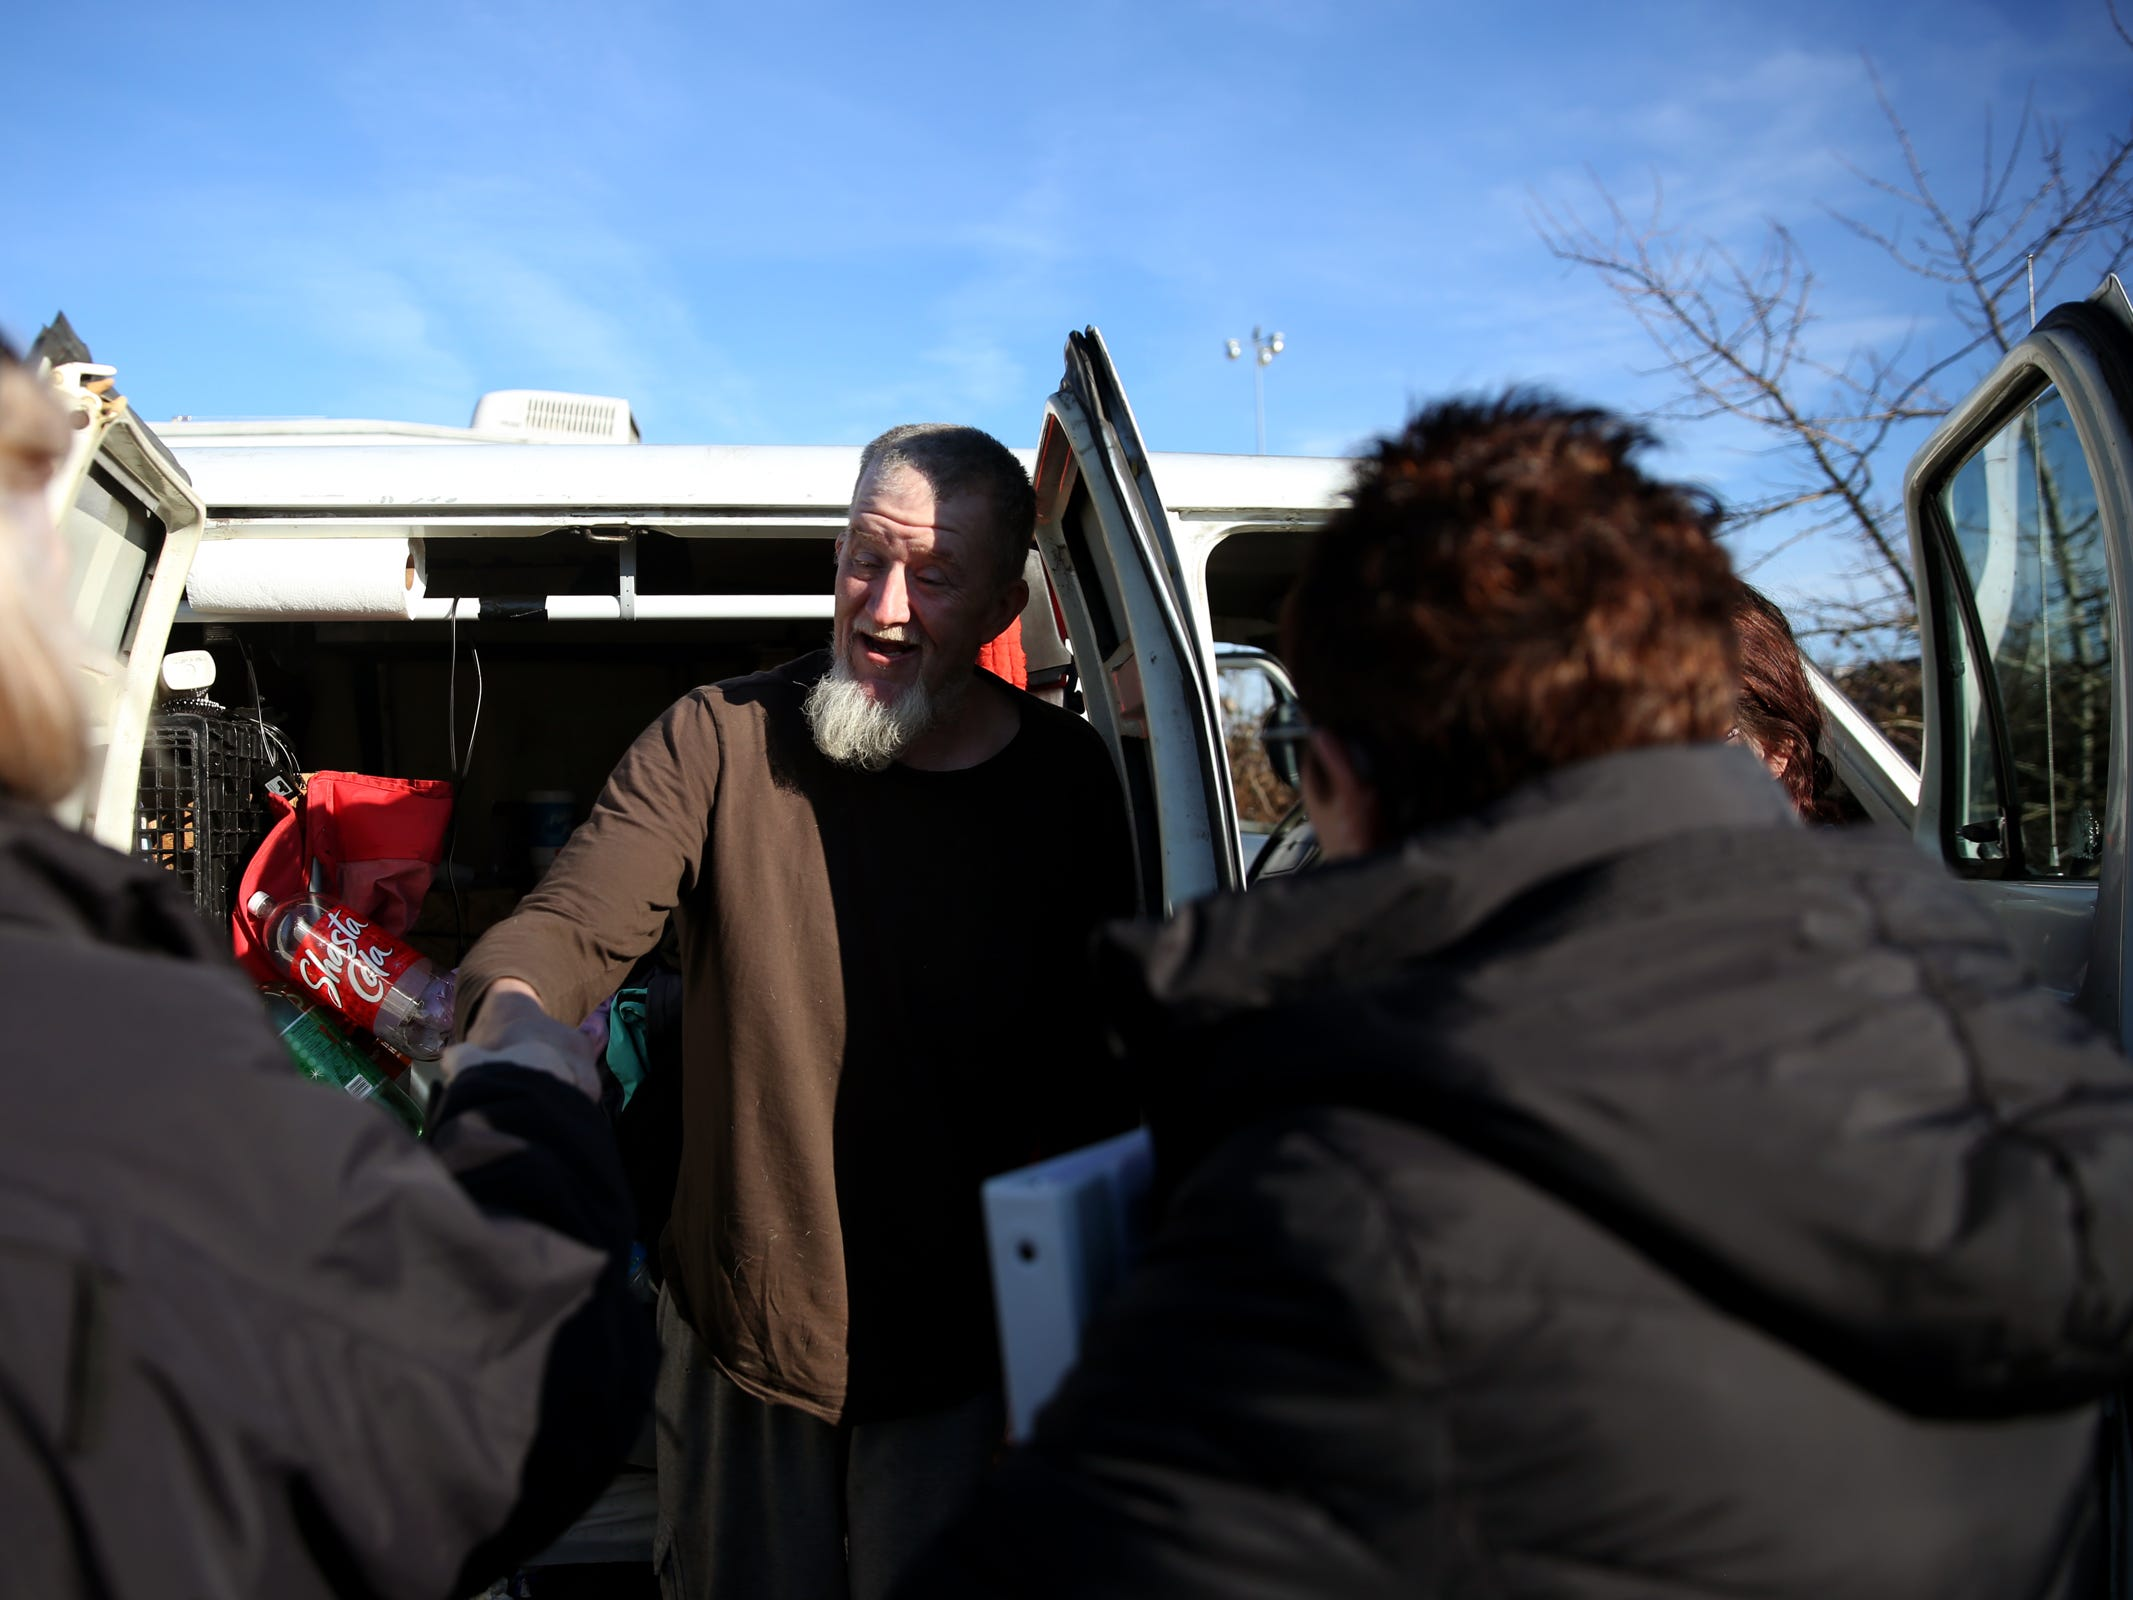 Aaron Webber, 43, greets volunteers Lorrie Walker, left, and Pamella Watson, outside the van he lives in with his girlfriend and dog during the annual Point-in-Time homeless count in Salem on Wednesday, Jan. 30, 2019. The number of people counted helps local programs qualify for federal funds to combat homelessness.